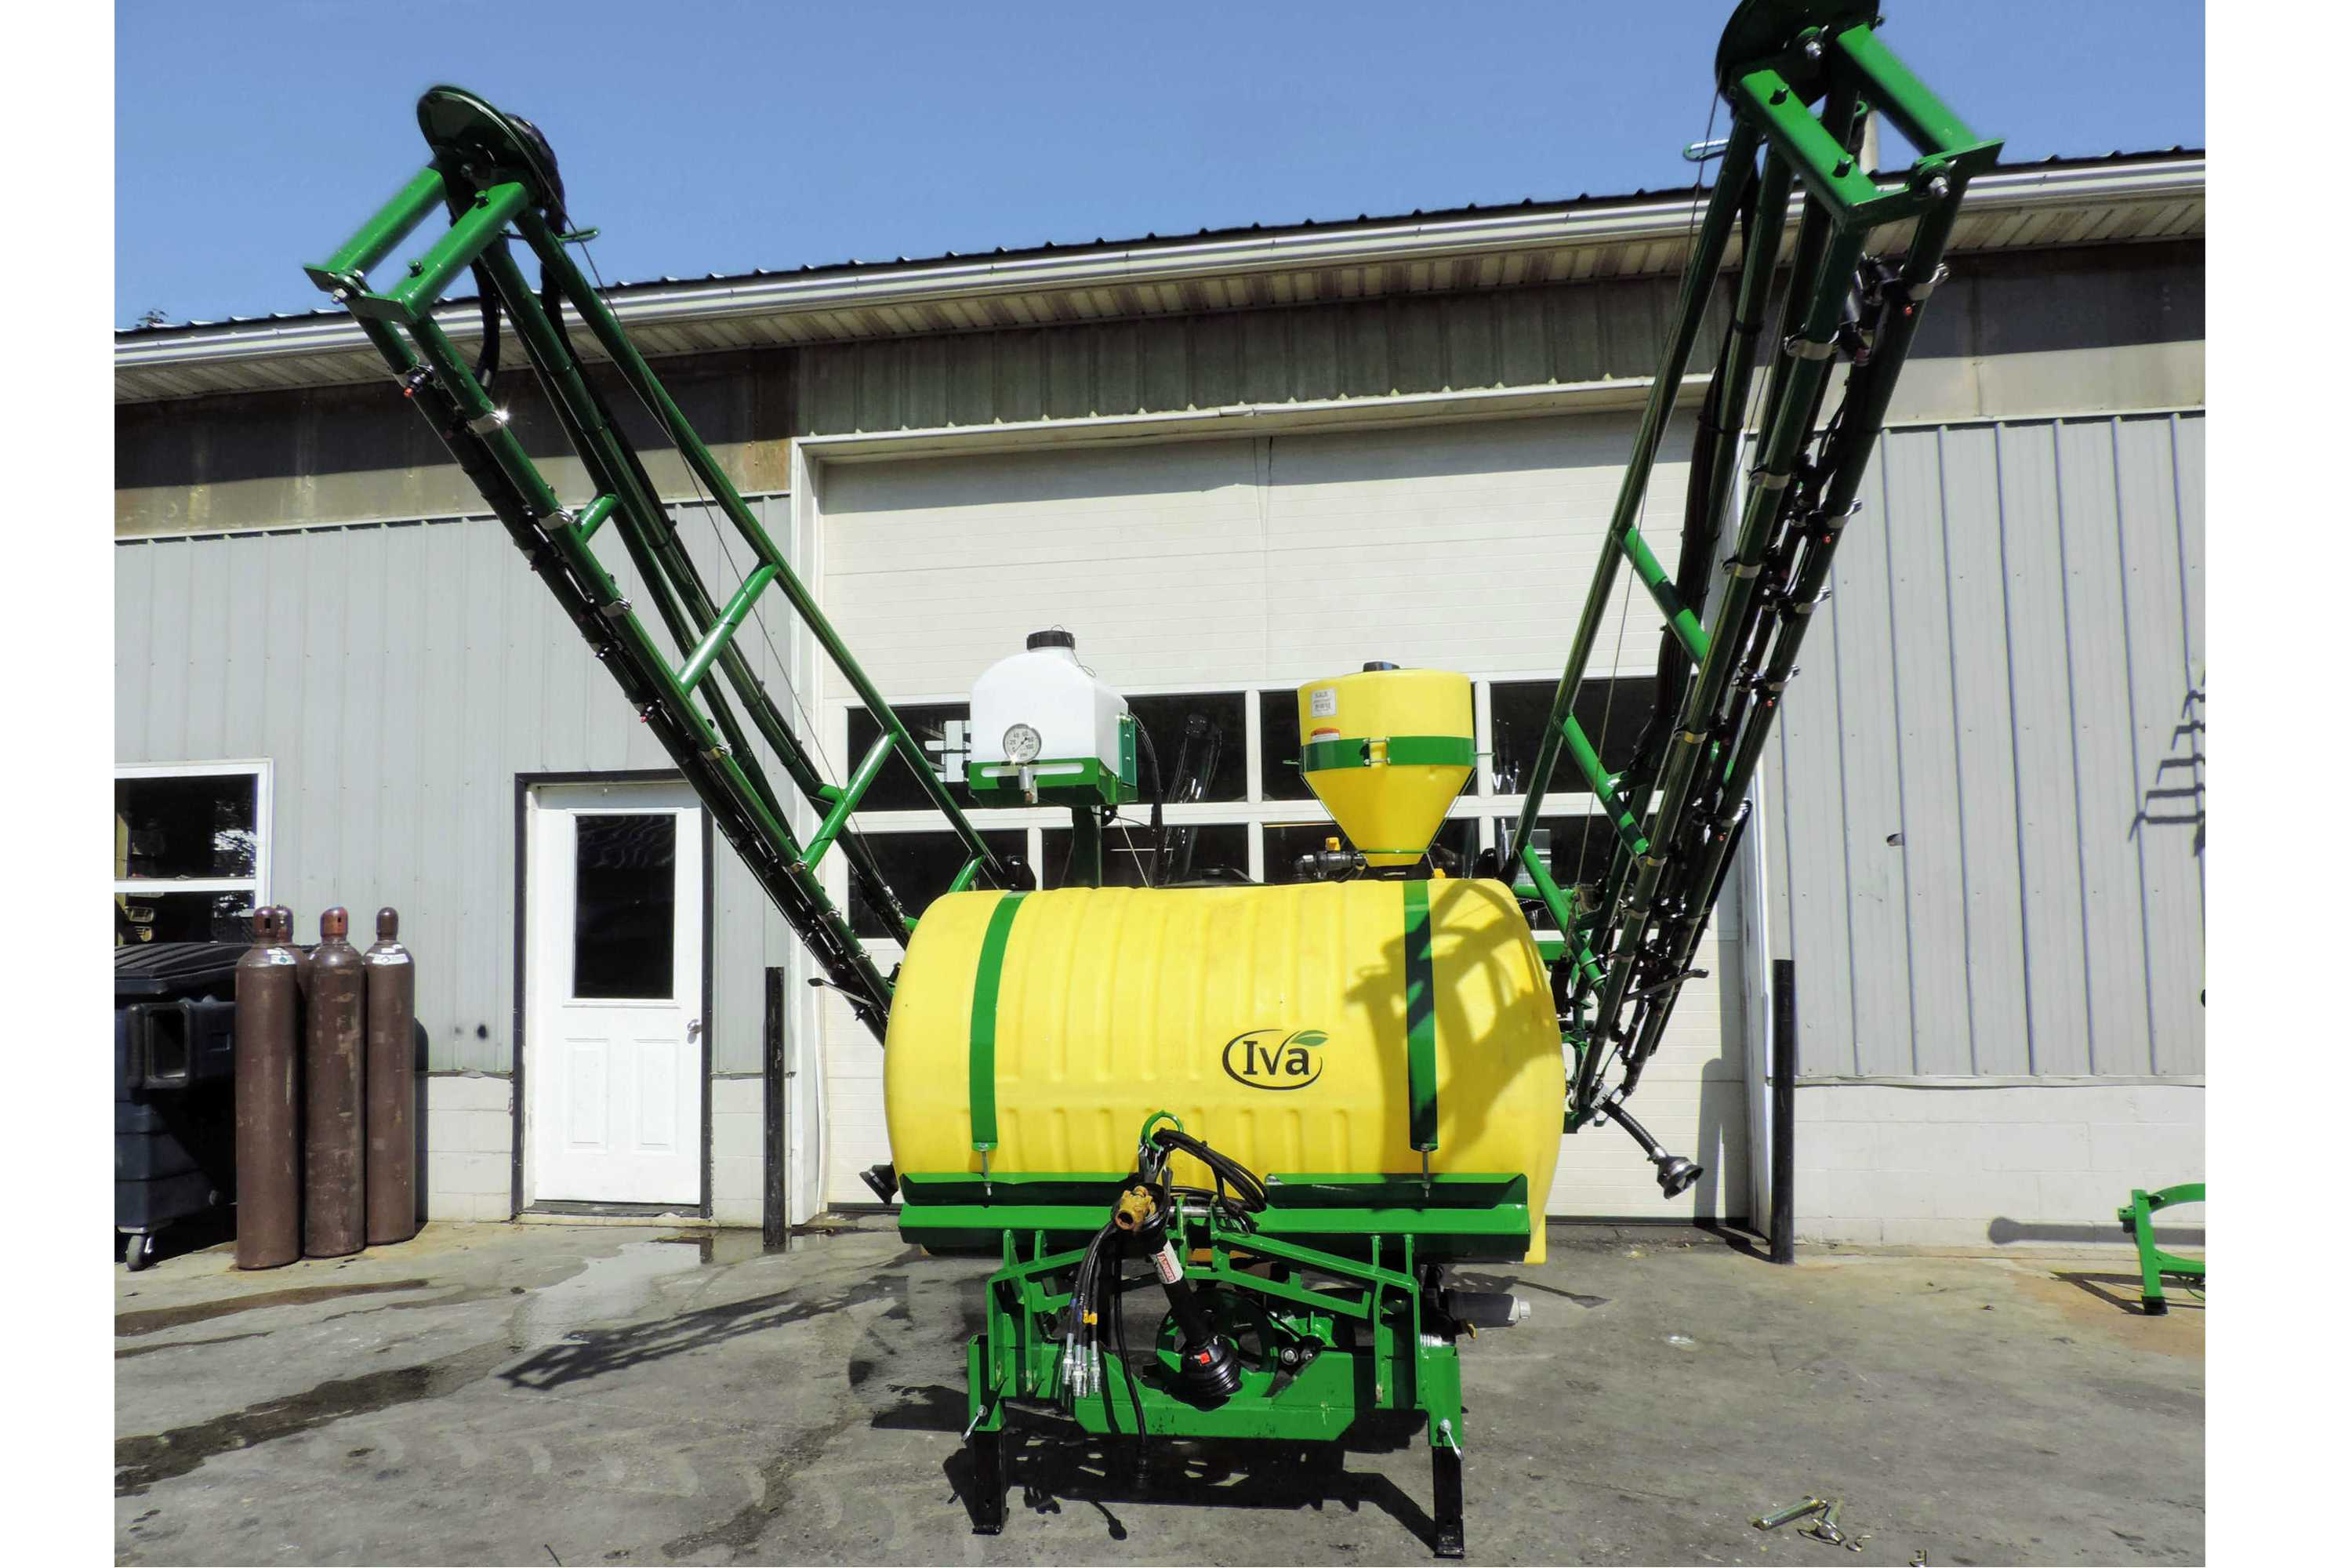 300 gallon 3-point Hitch Sprayer with 45' SpringRide booms